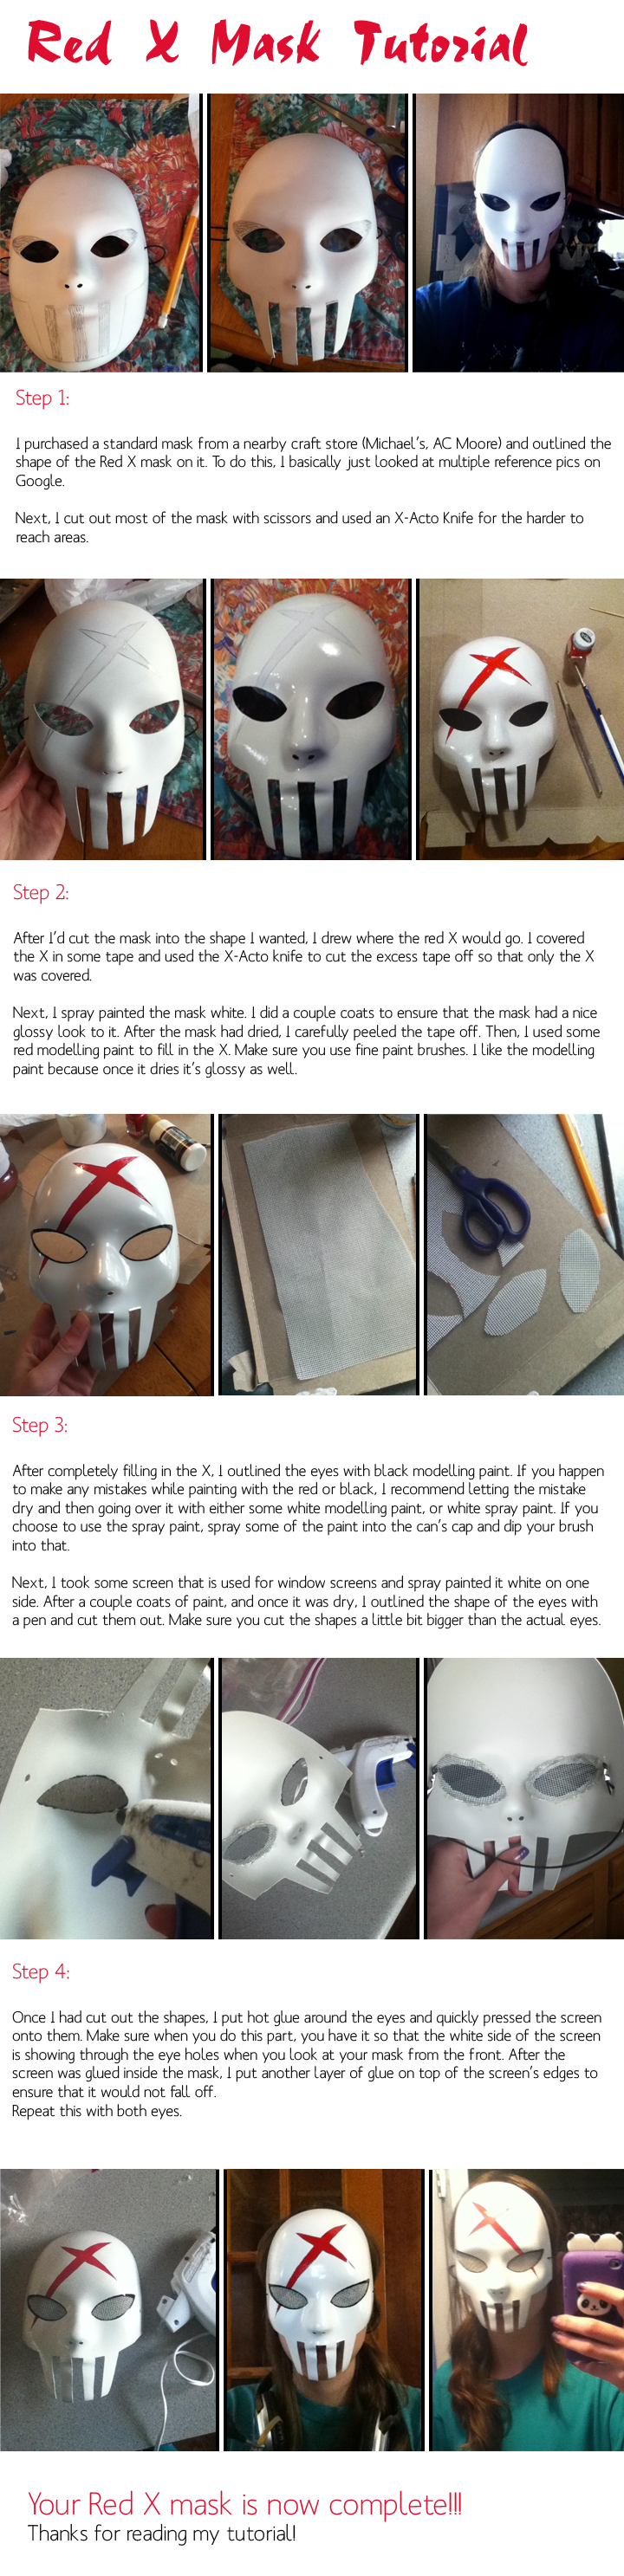 Red X Mask Tutorial by SadieAlucard